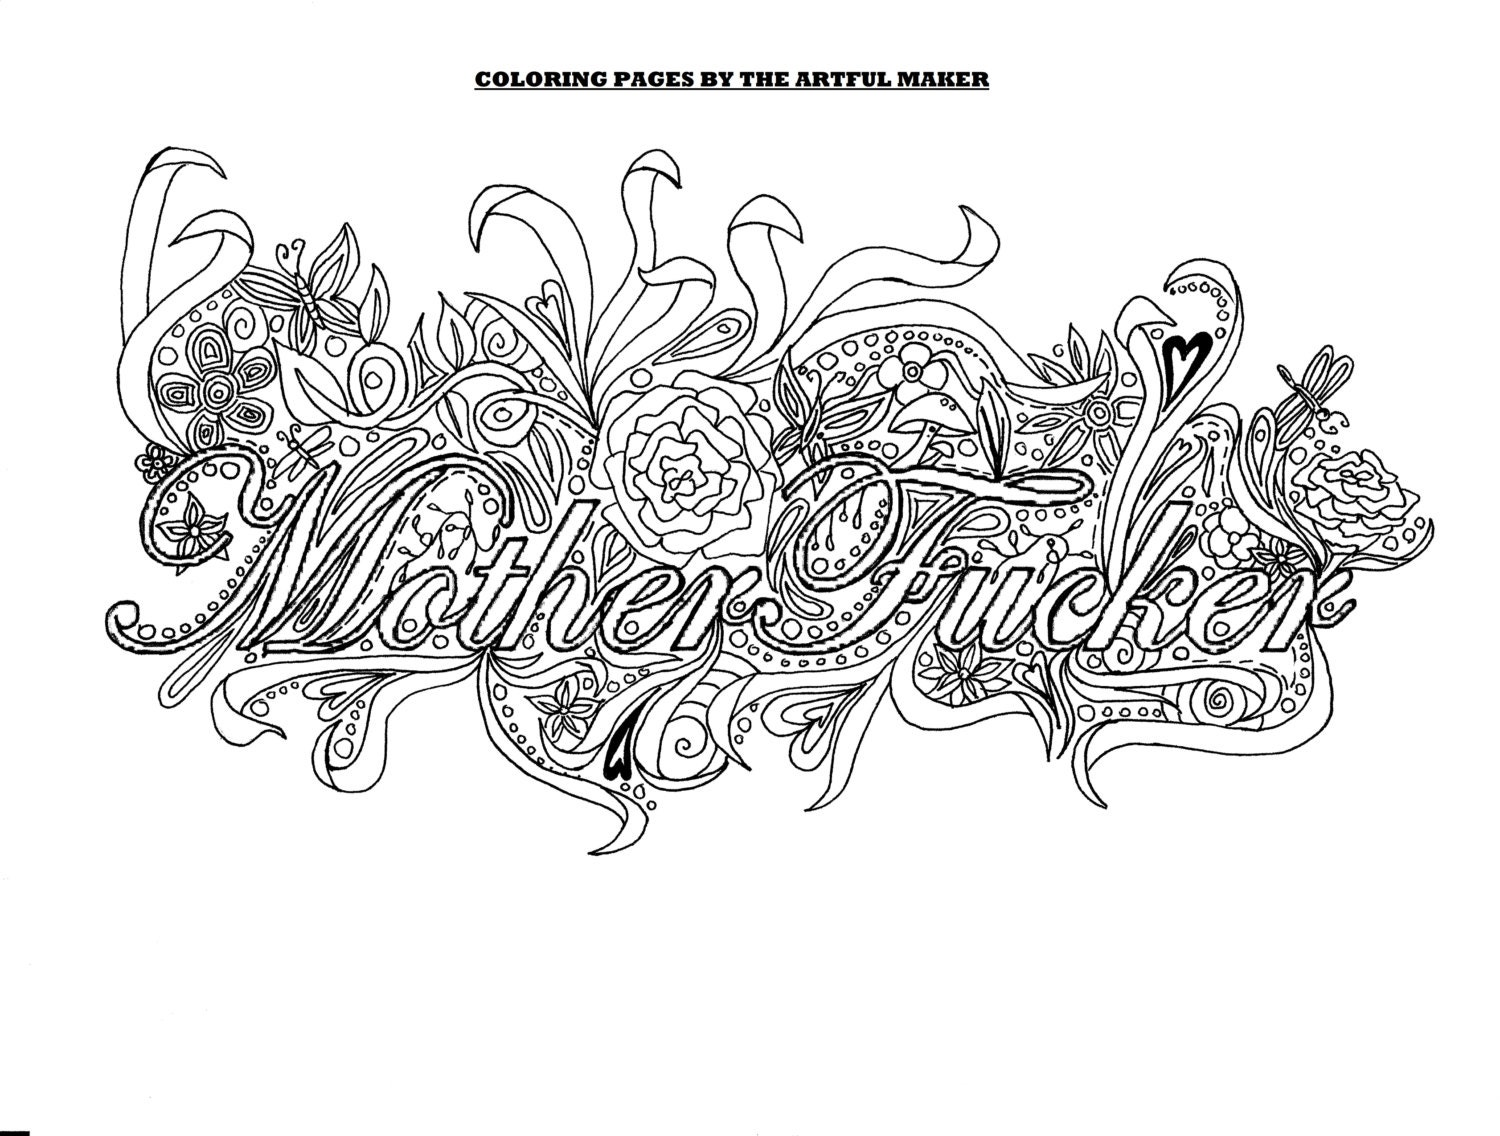 Motherfucker Adult Coloring Page By The Artful Maker Etsy